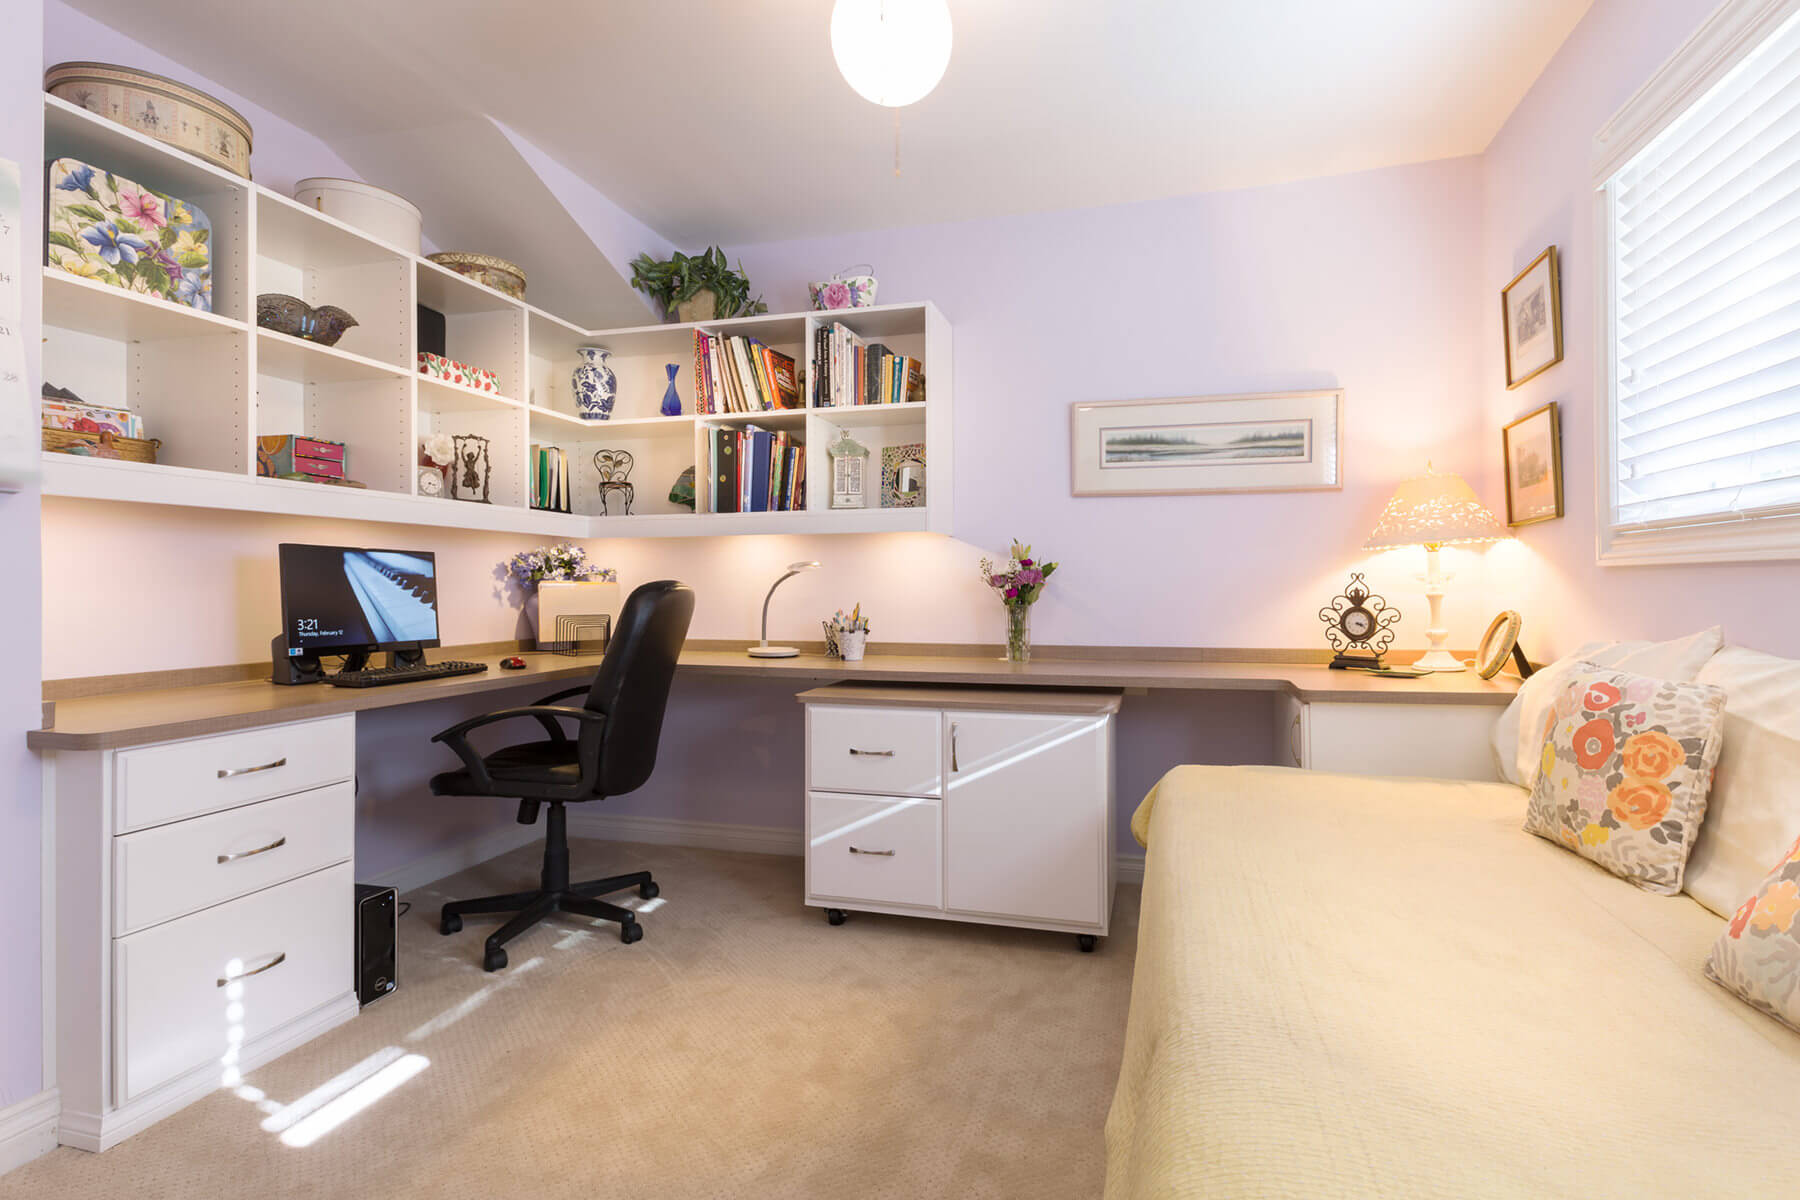 26 home office designs (desks & shelving)closet factory